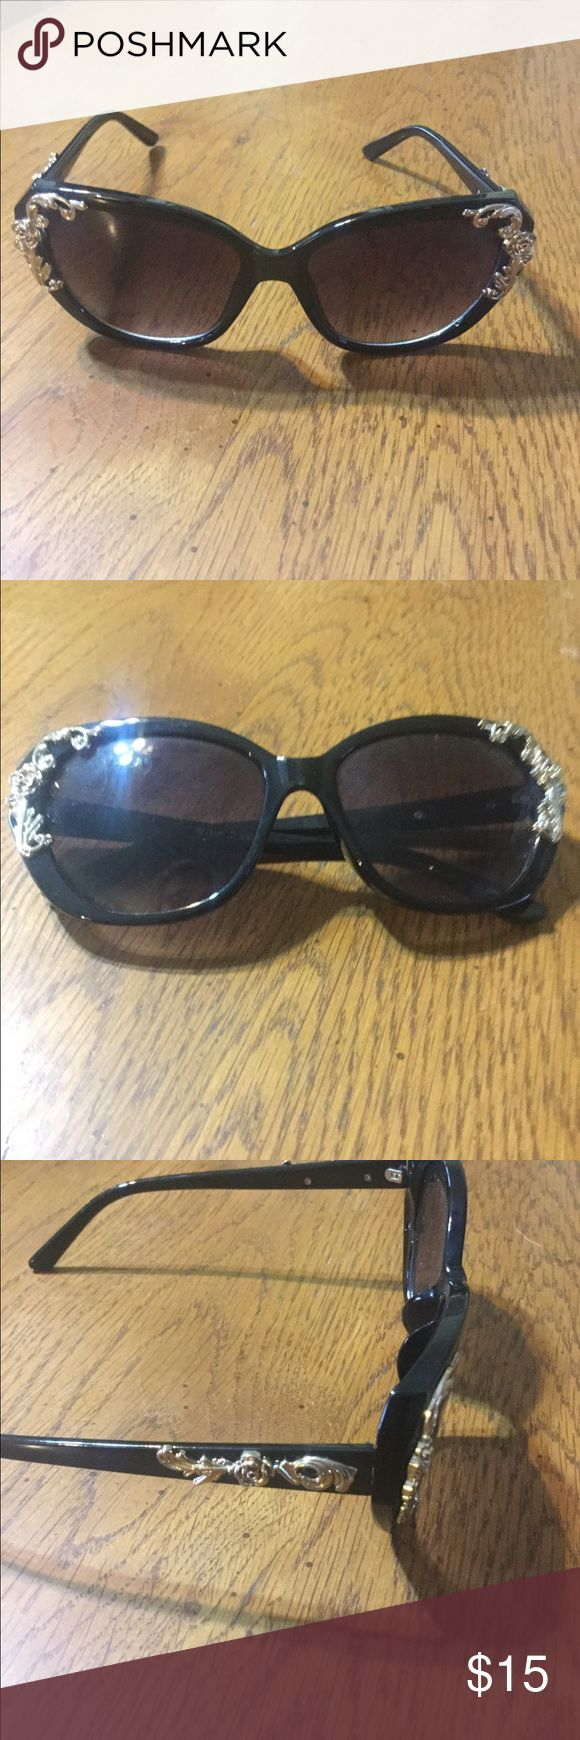 Black Betsy Johnson sunglasses with gold accents Black Betsy Johnson sunglasses with gold accents. The gold accents are roses they are on each side of the glass and as well on them stem. In great condition. They have an Old Hollywood movie star feel. Betsey Johnson Accessories Sunglasses